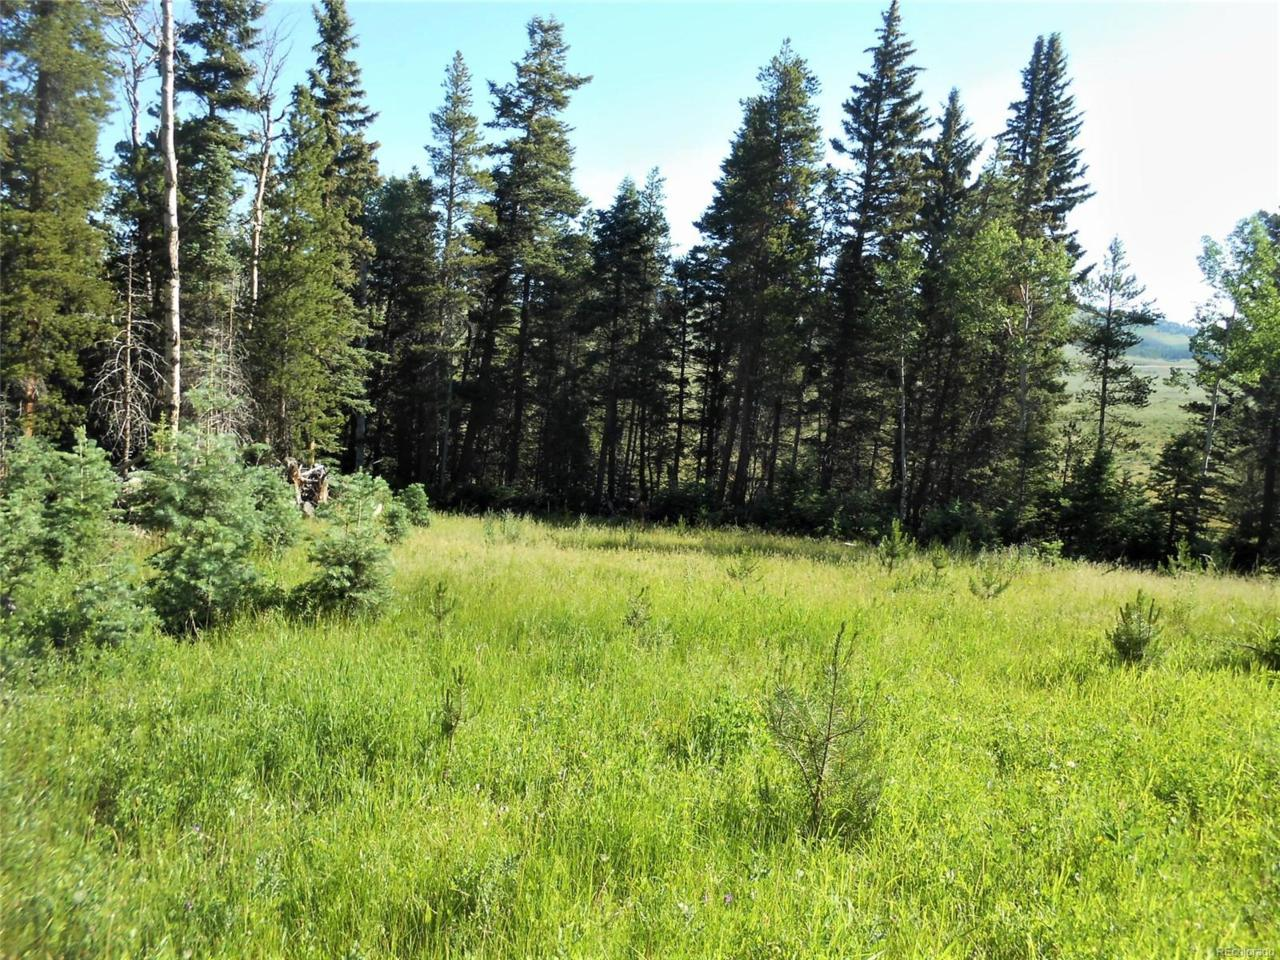 473 County Road W.8 Road, Fort Garland, CO 81133 (MLS #7030307) :: 8z Real Estate